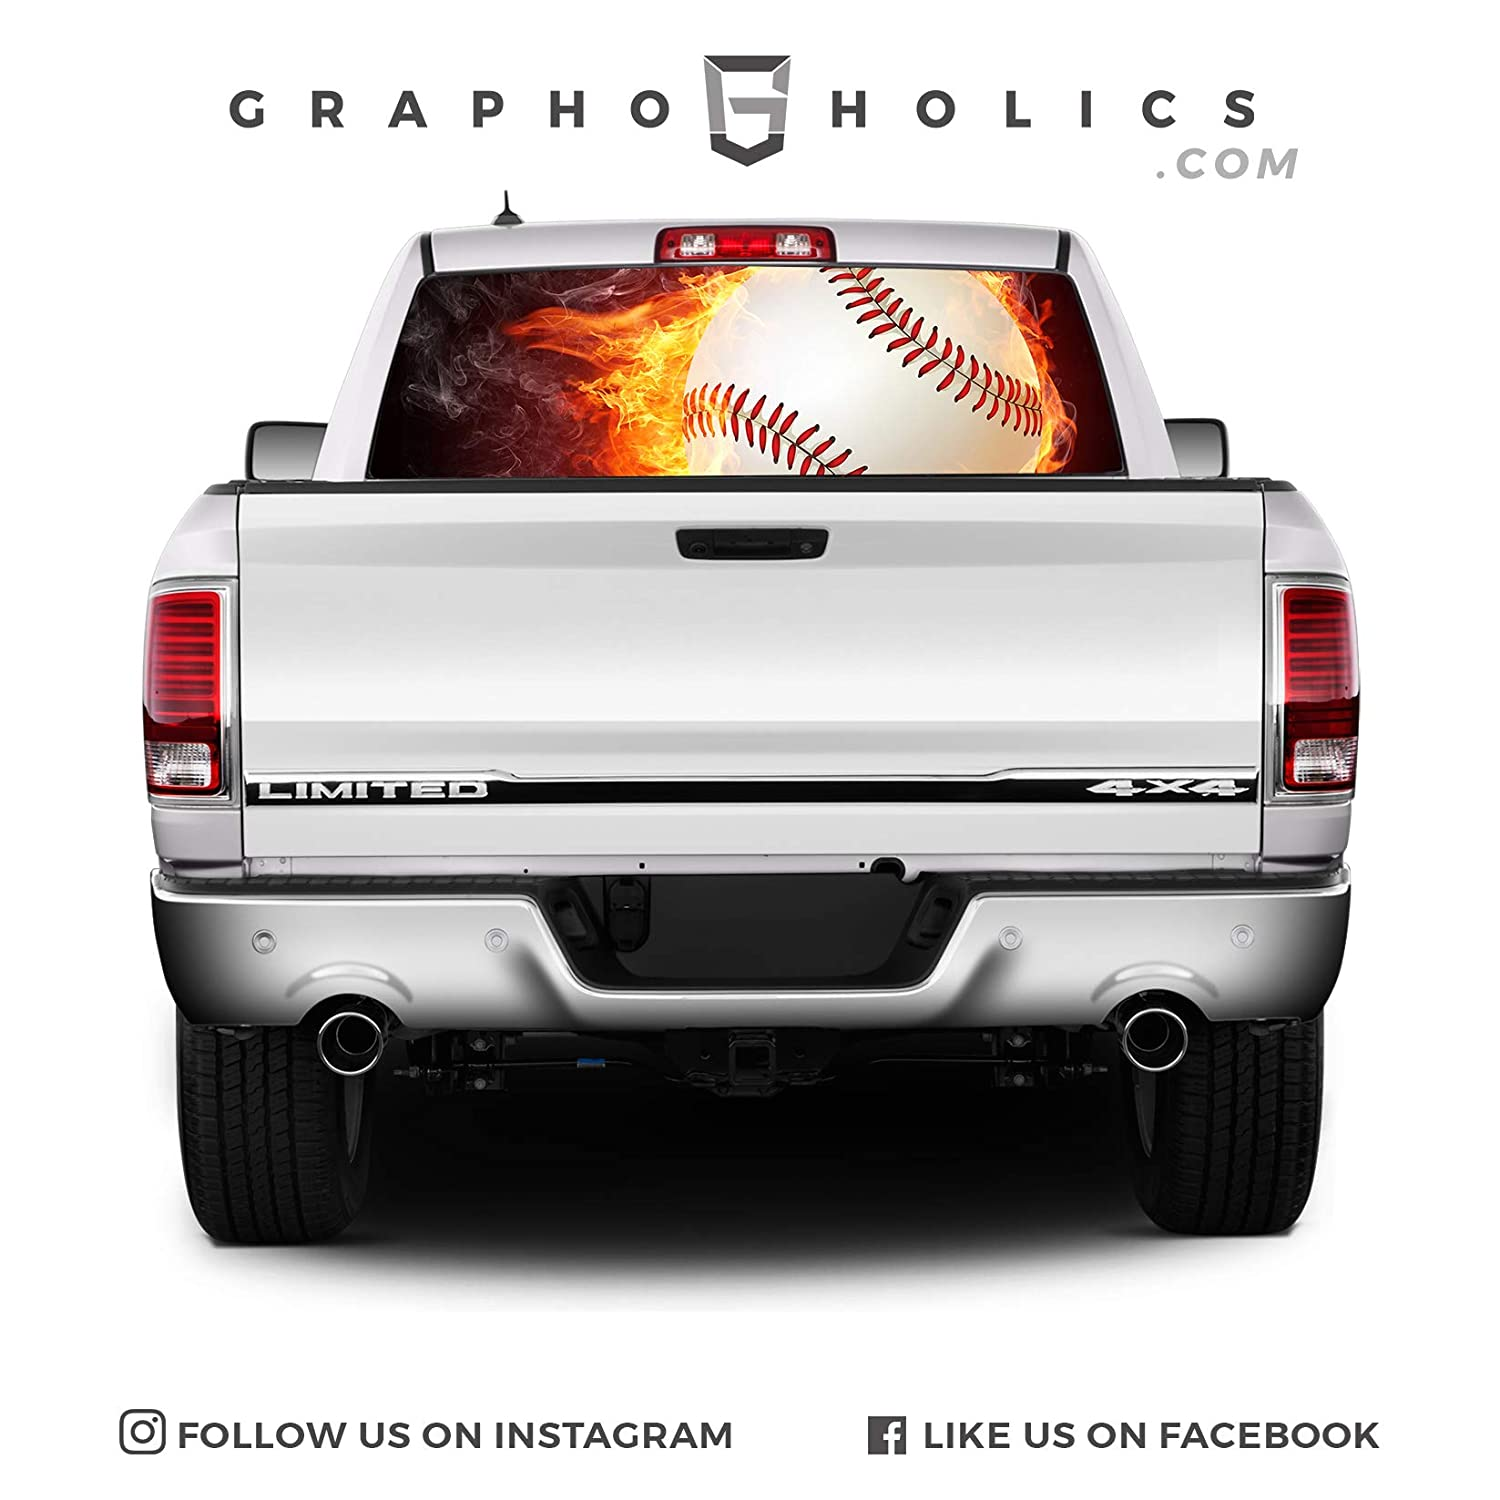 Fire Ball Baseball Pick-Up Truck Perforated Rear Window Wrap